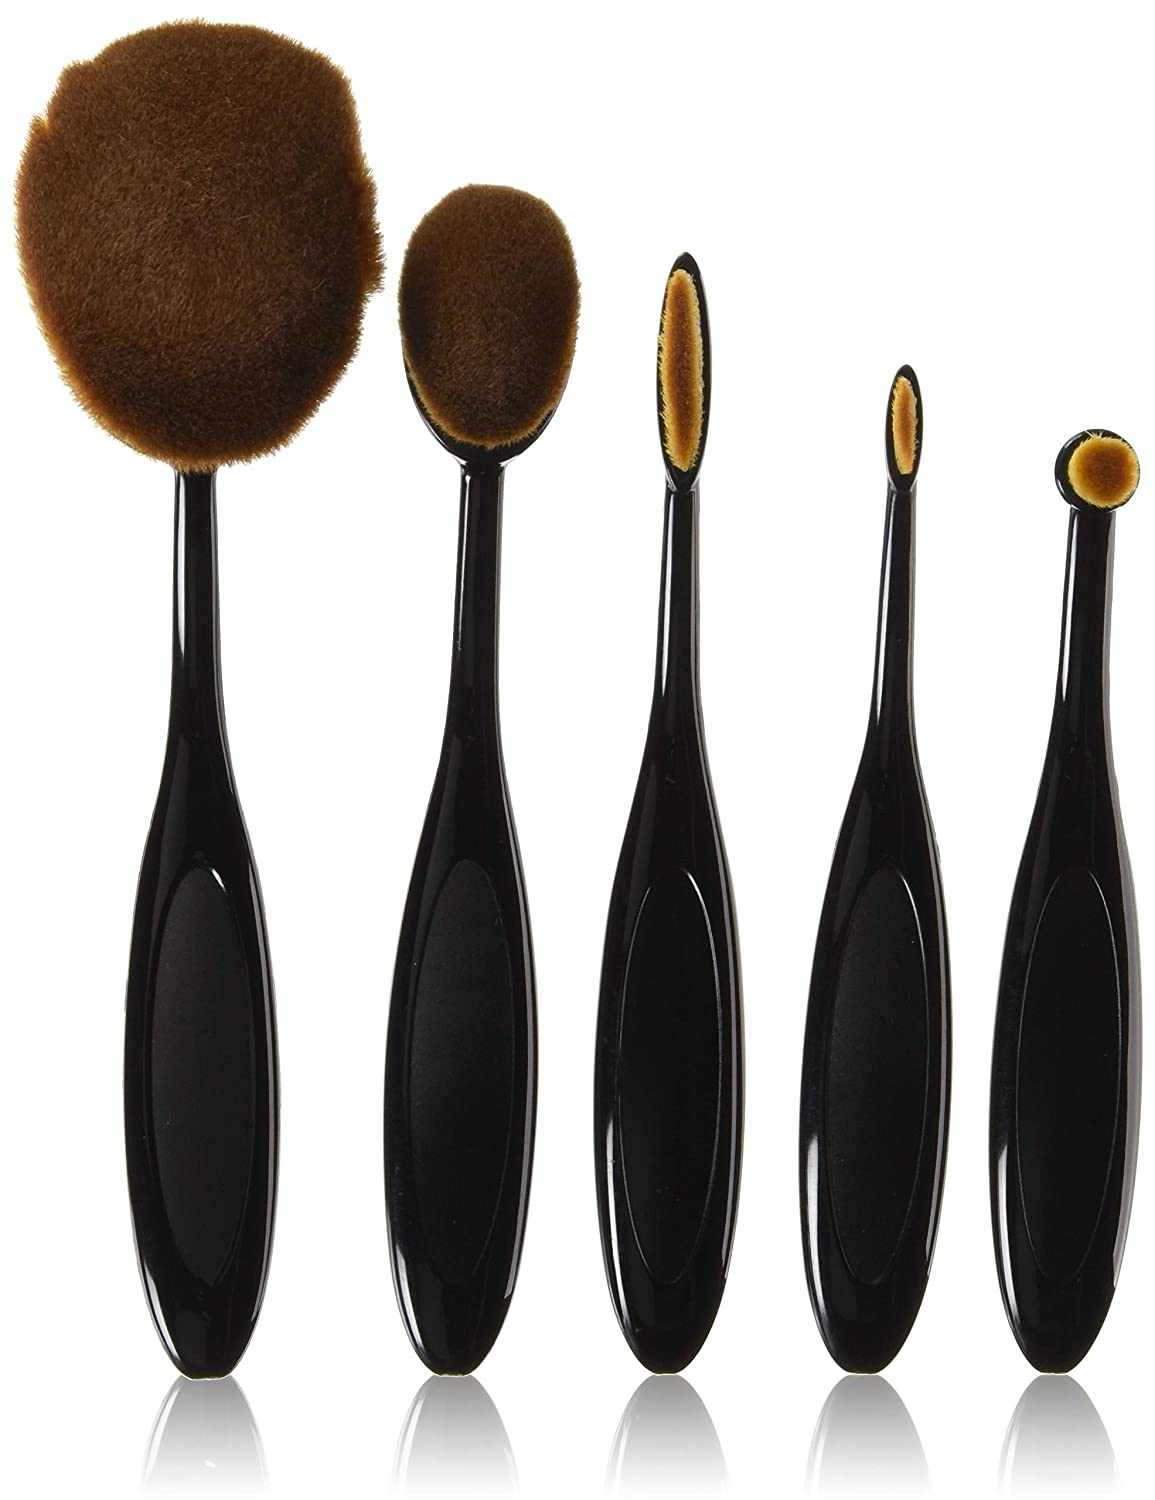 U-beauty® Profession 5pcs/set Contour Brush toothbrush Oval Blending Brush Blush Foundation Powder Eyeliner Eyeshadow Brush Make up Brush Sets